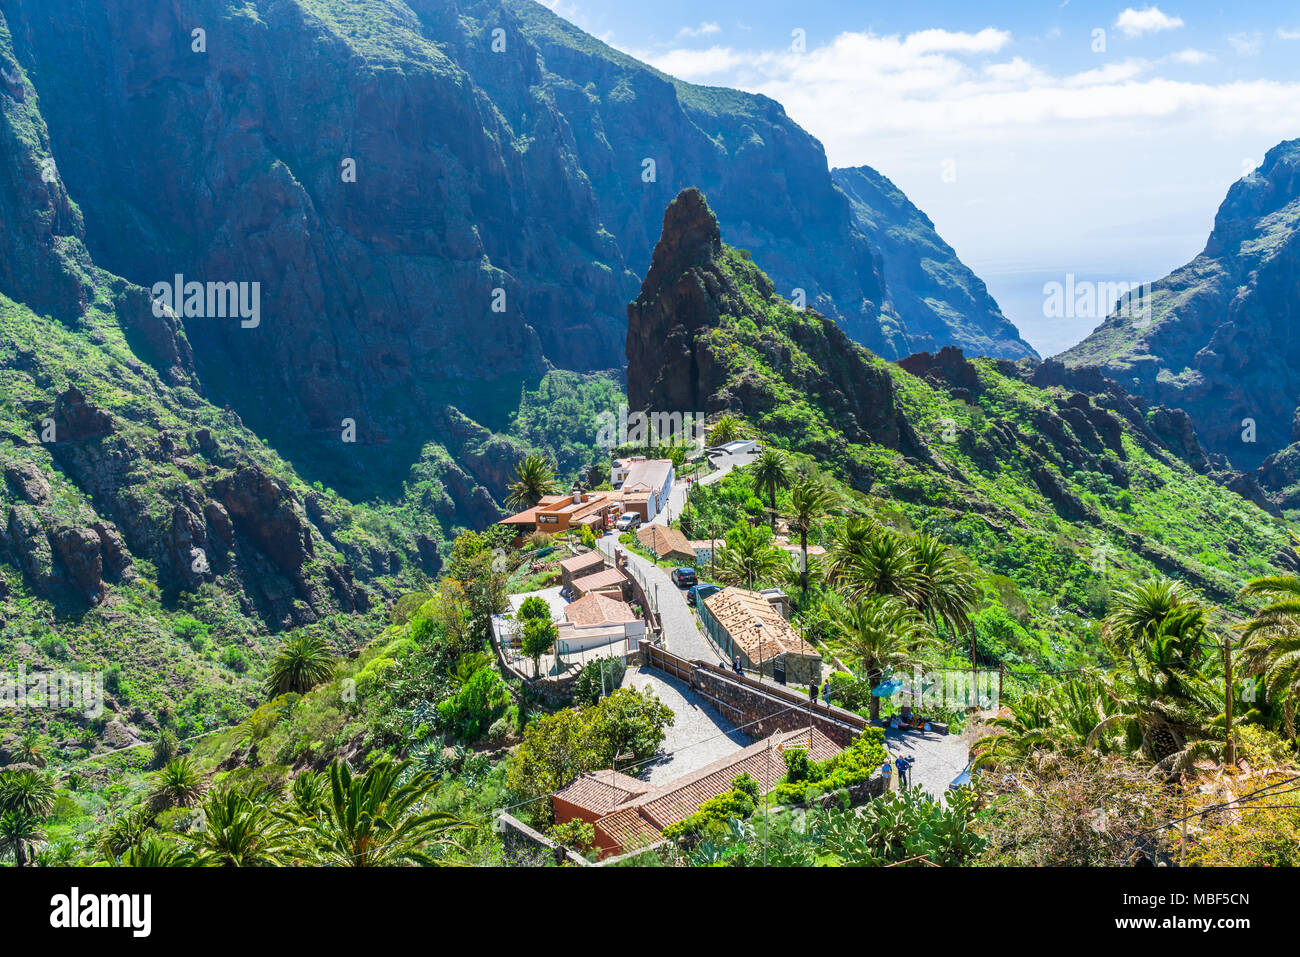 MASCA, TENERIFE - 20 MARCH 2018: Small mountain village Masca on the island of Tenerife is home to around 90 inhabitants. The village lies at an altit - Stock Image